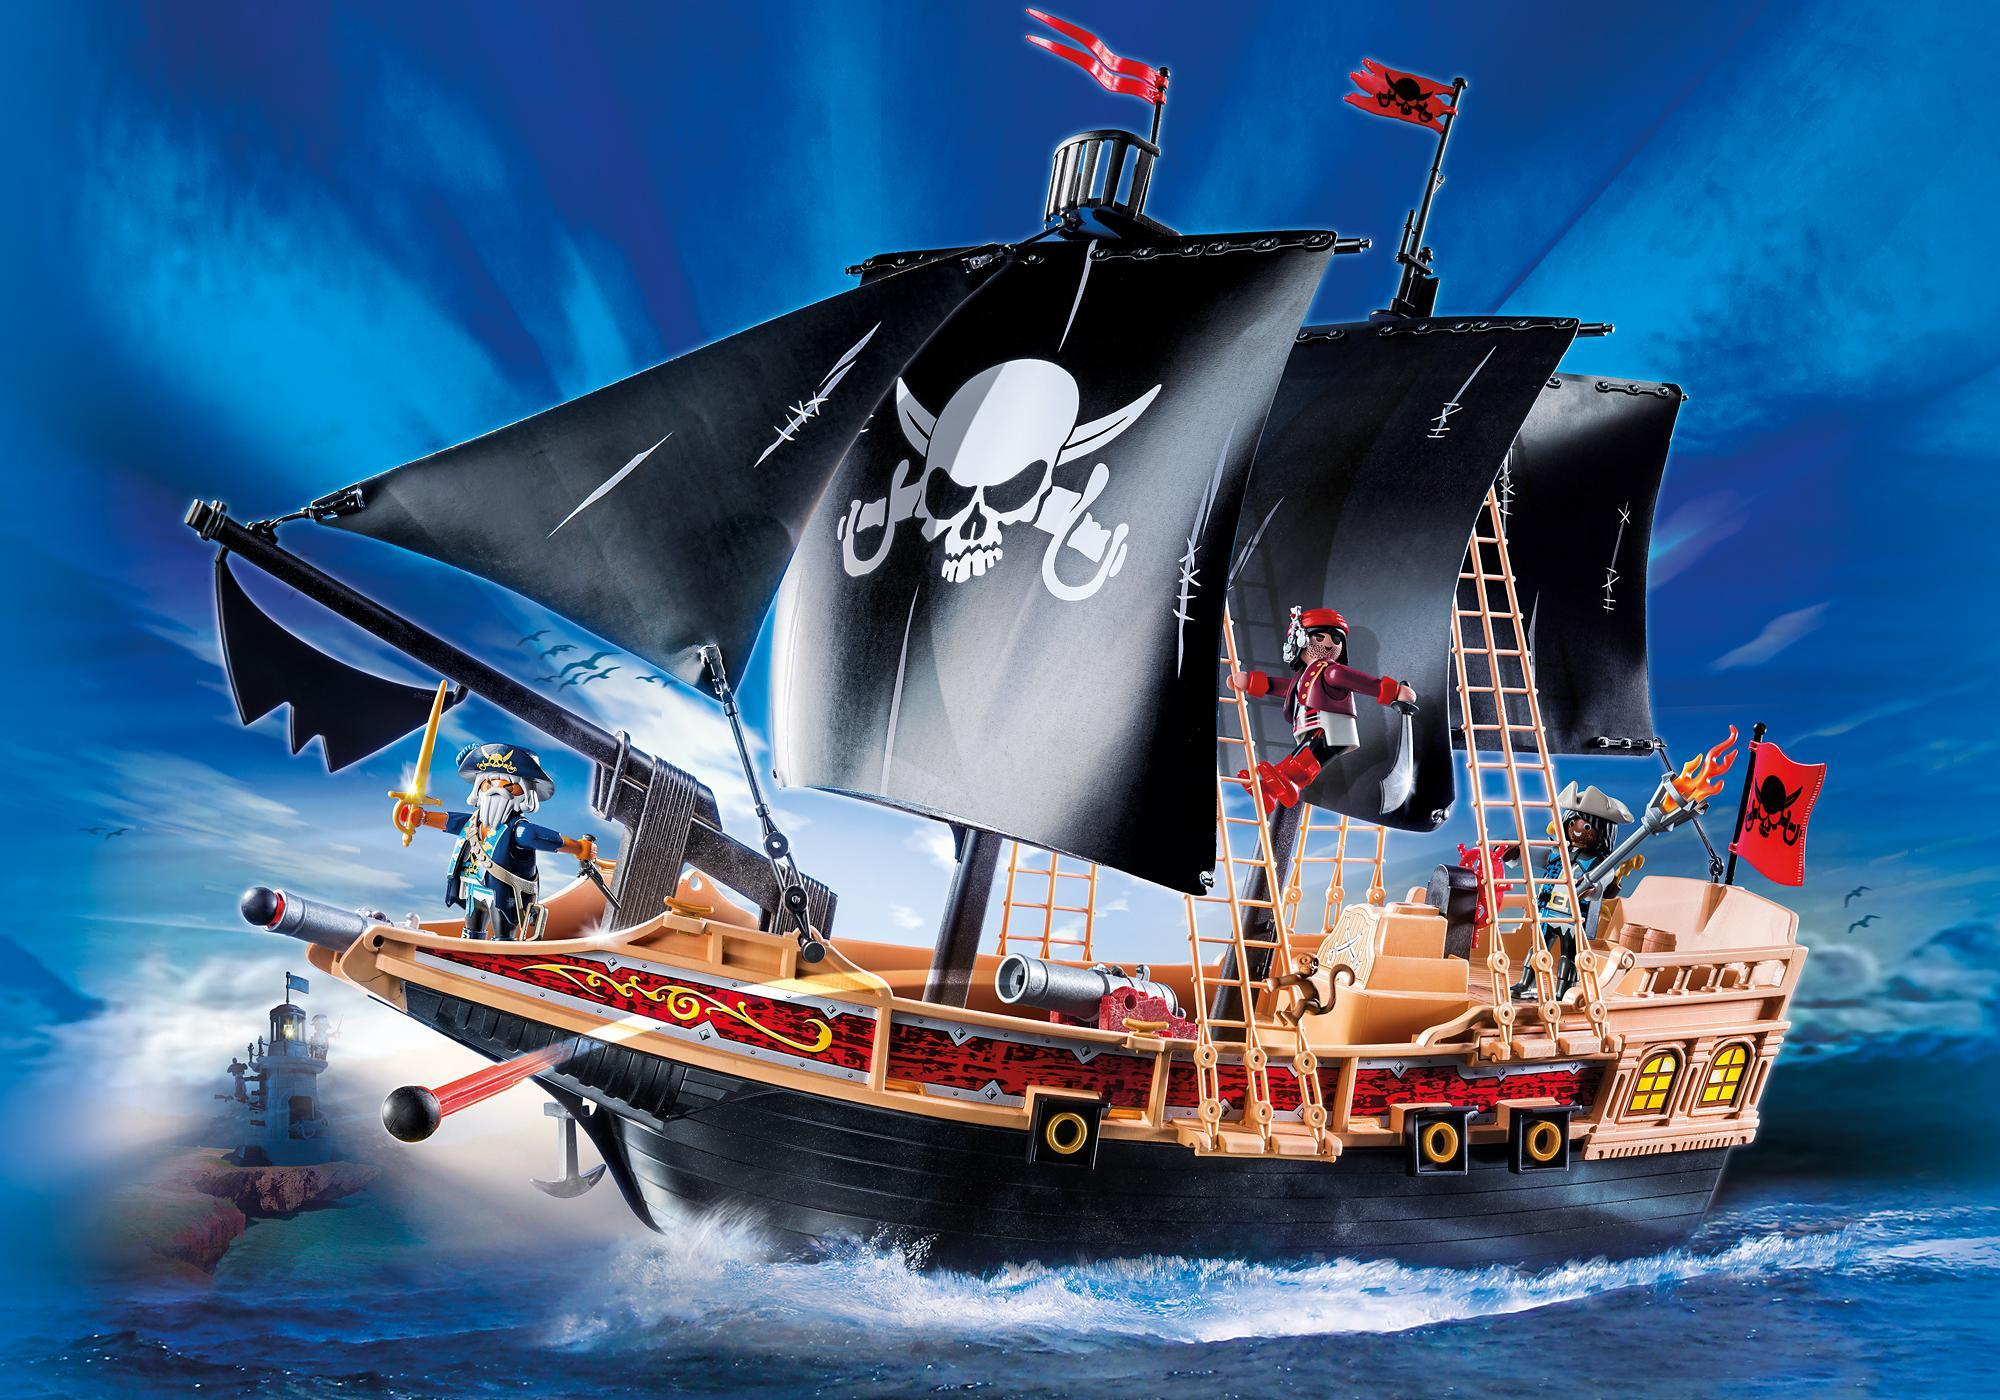 Playmobil piratskepp manual